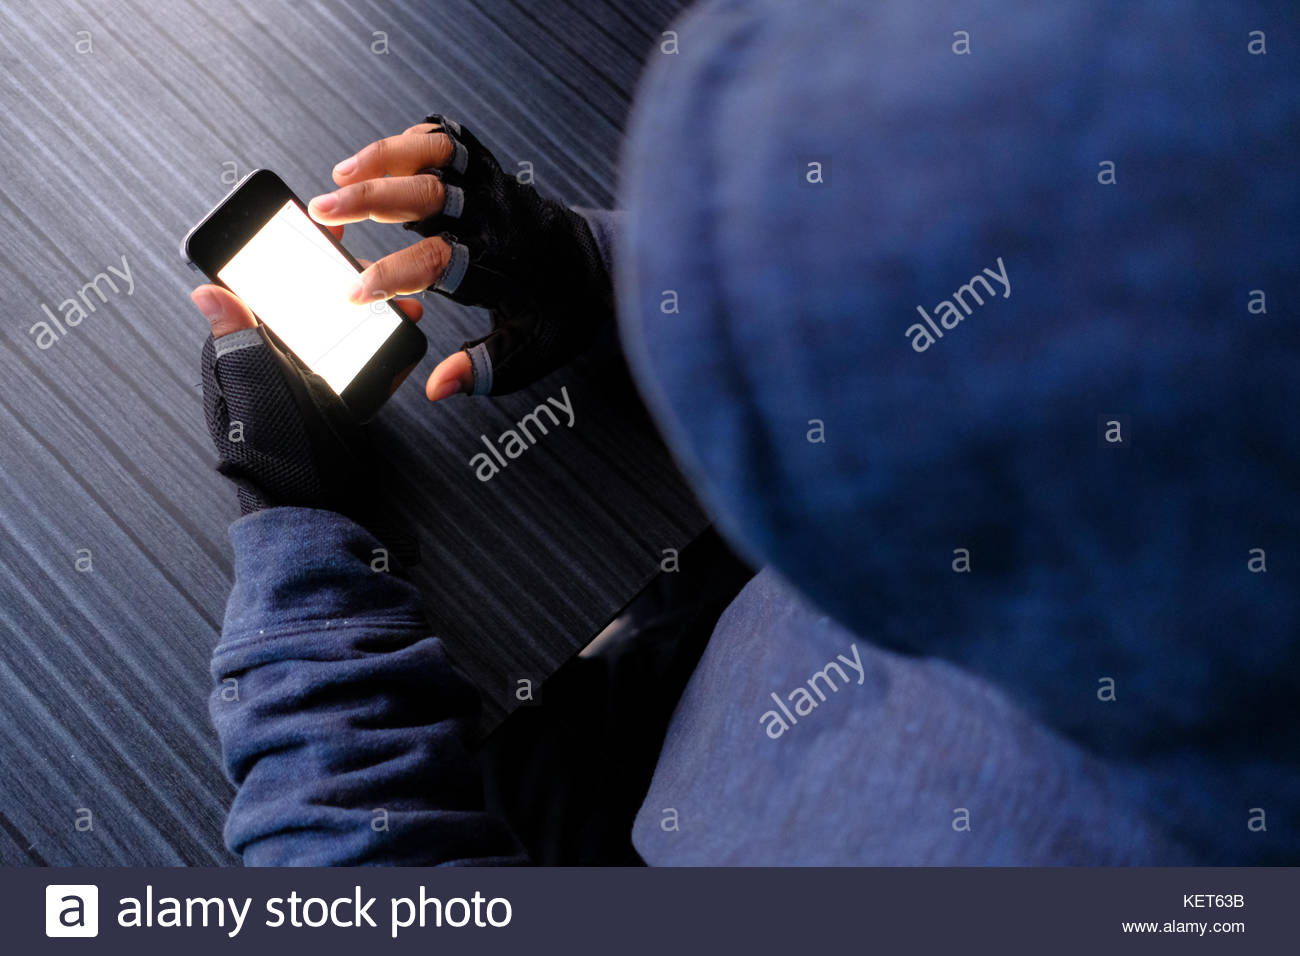 The Impact of Cell Phones on Crime